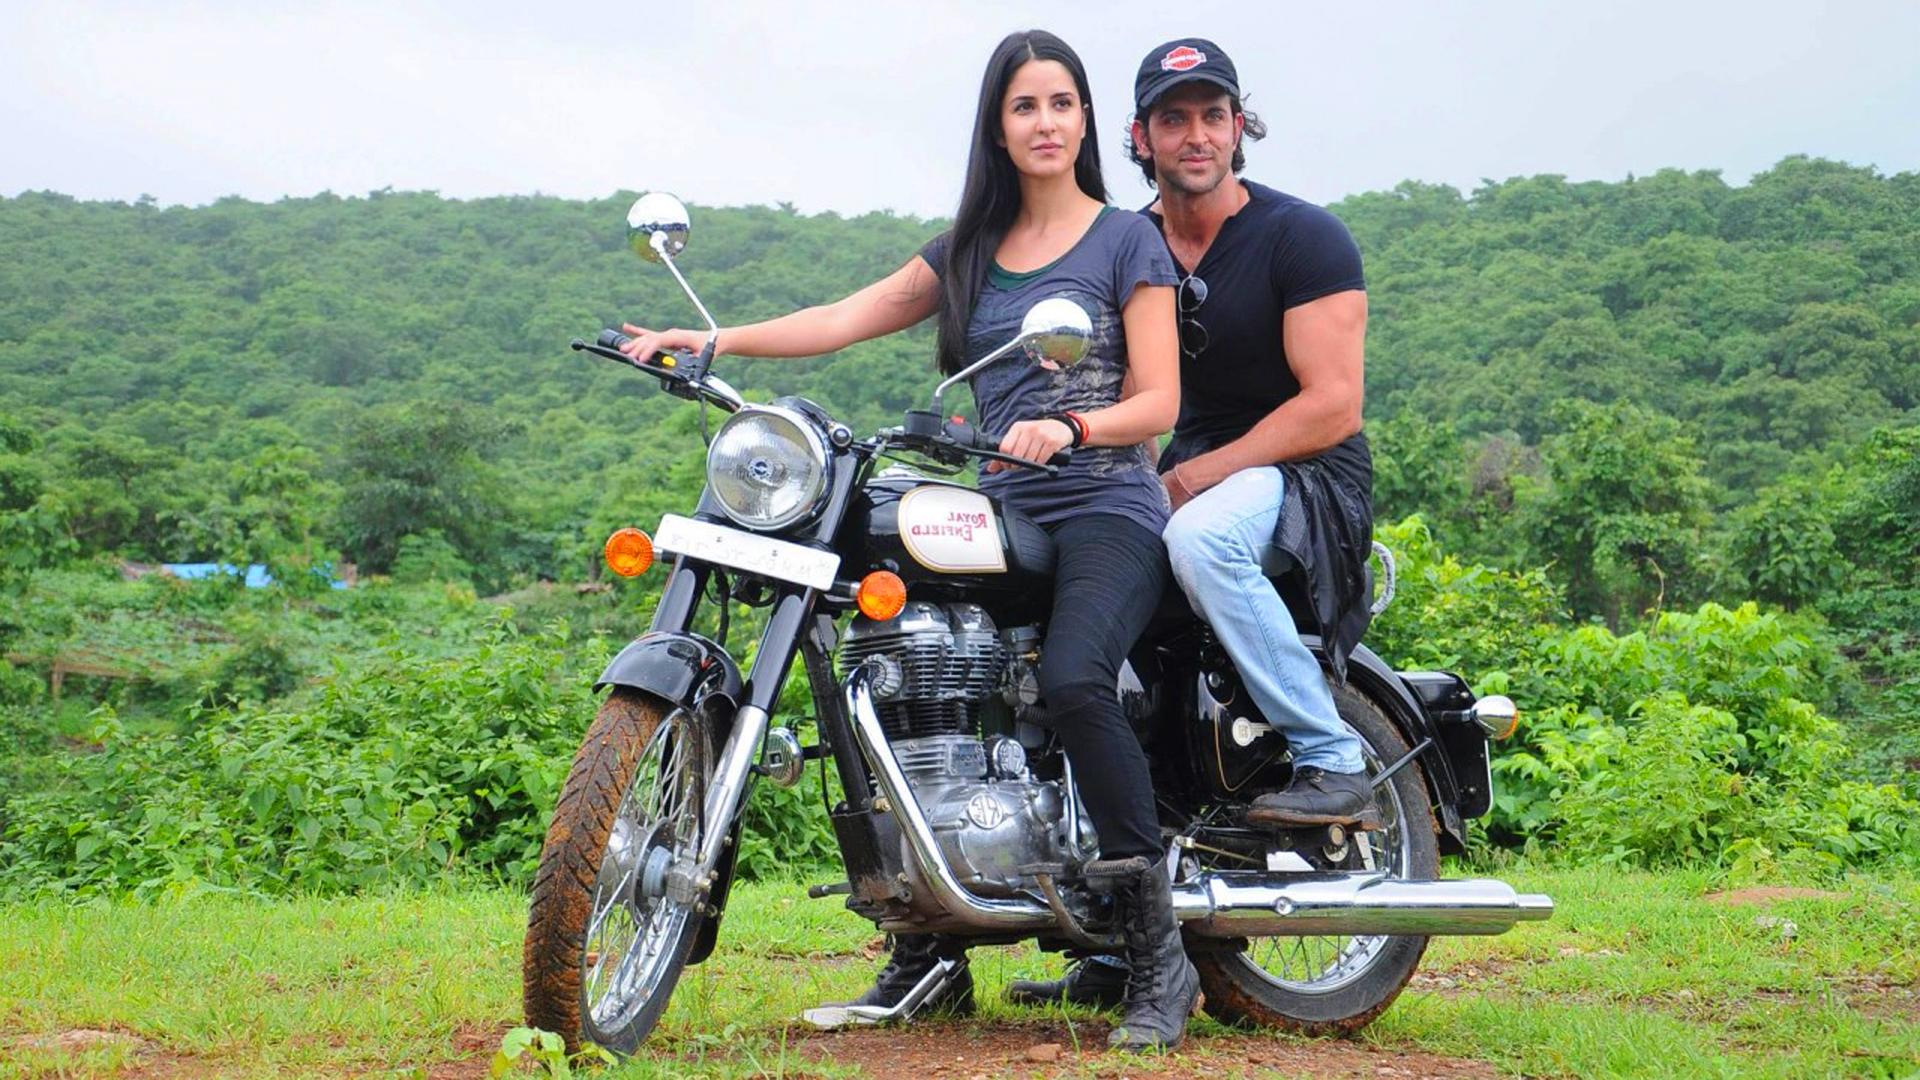 Katrina kaif and Hritik Roshan on Bike 1995